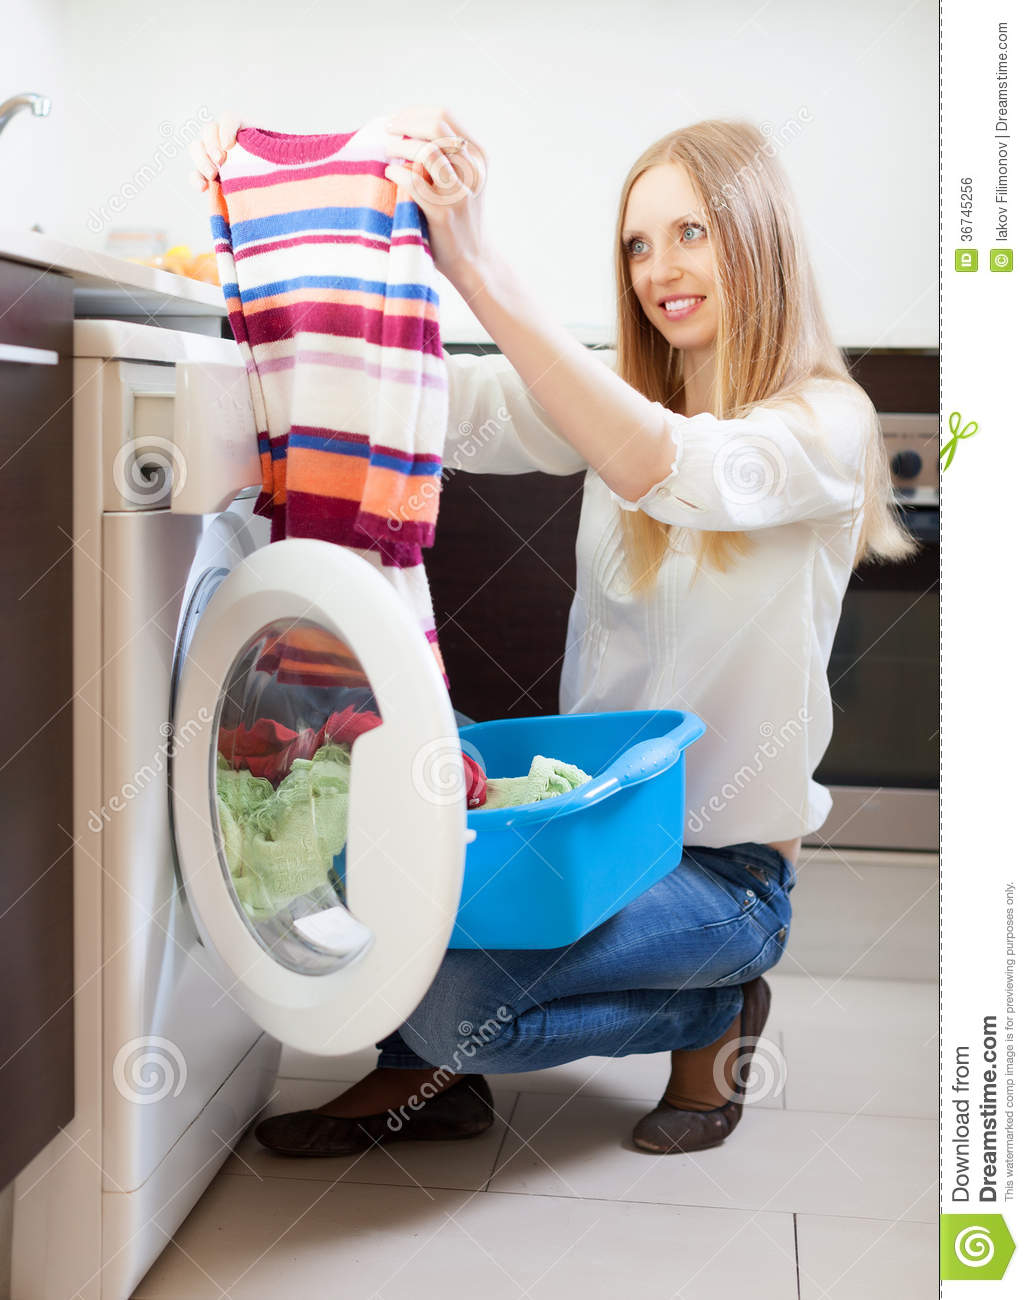 washing machine with clothes: